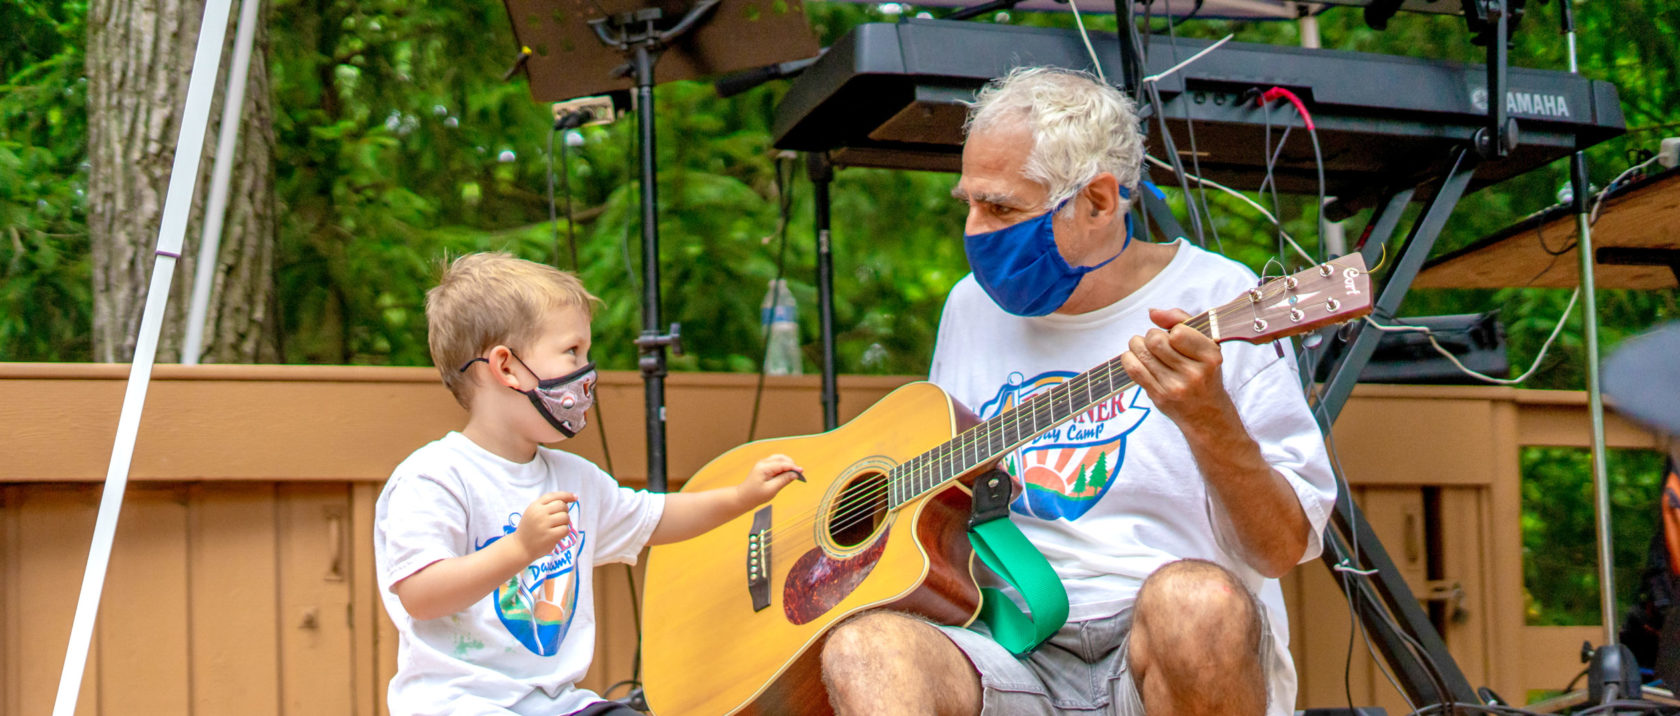 Male camper learns to play guitar from instructor with masks on